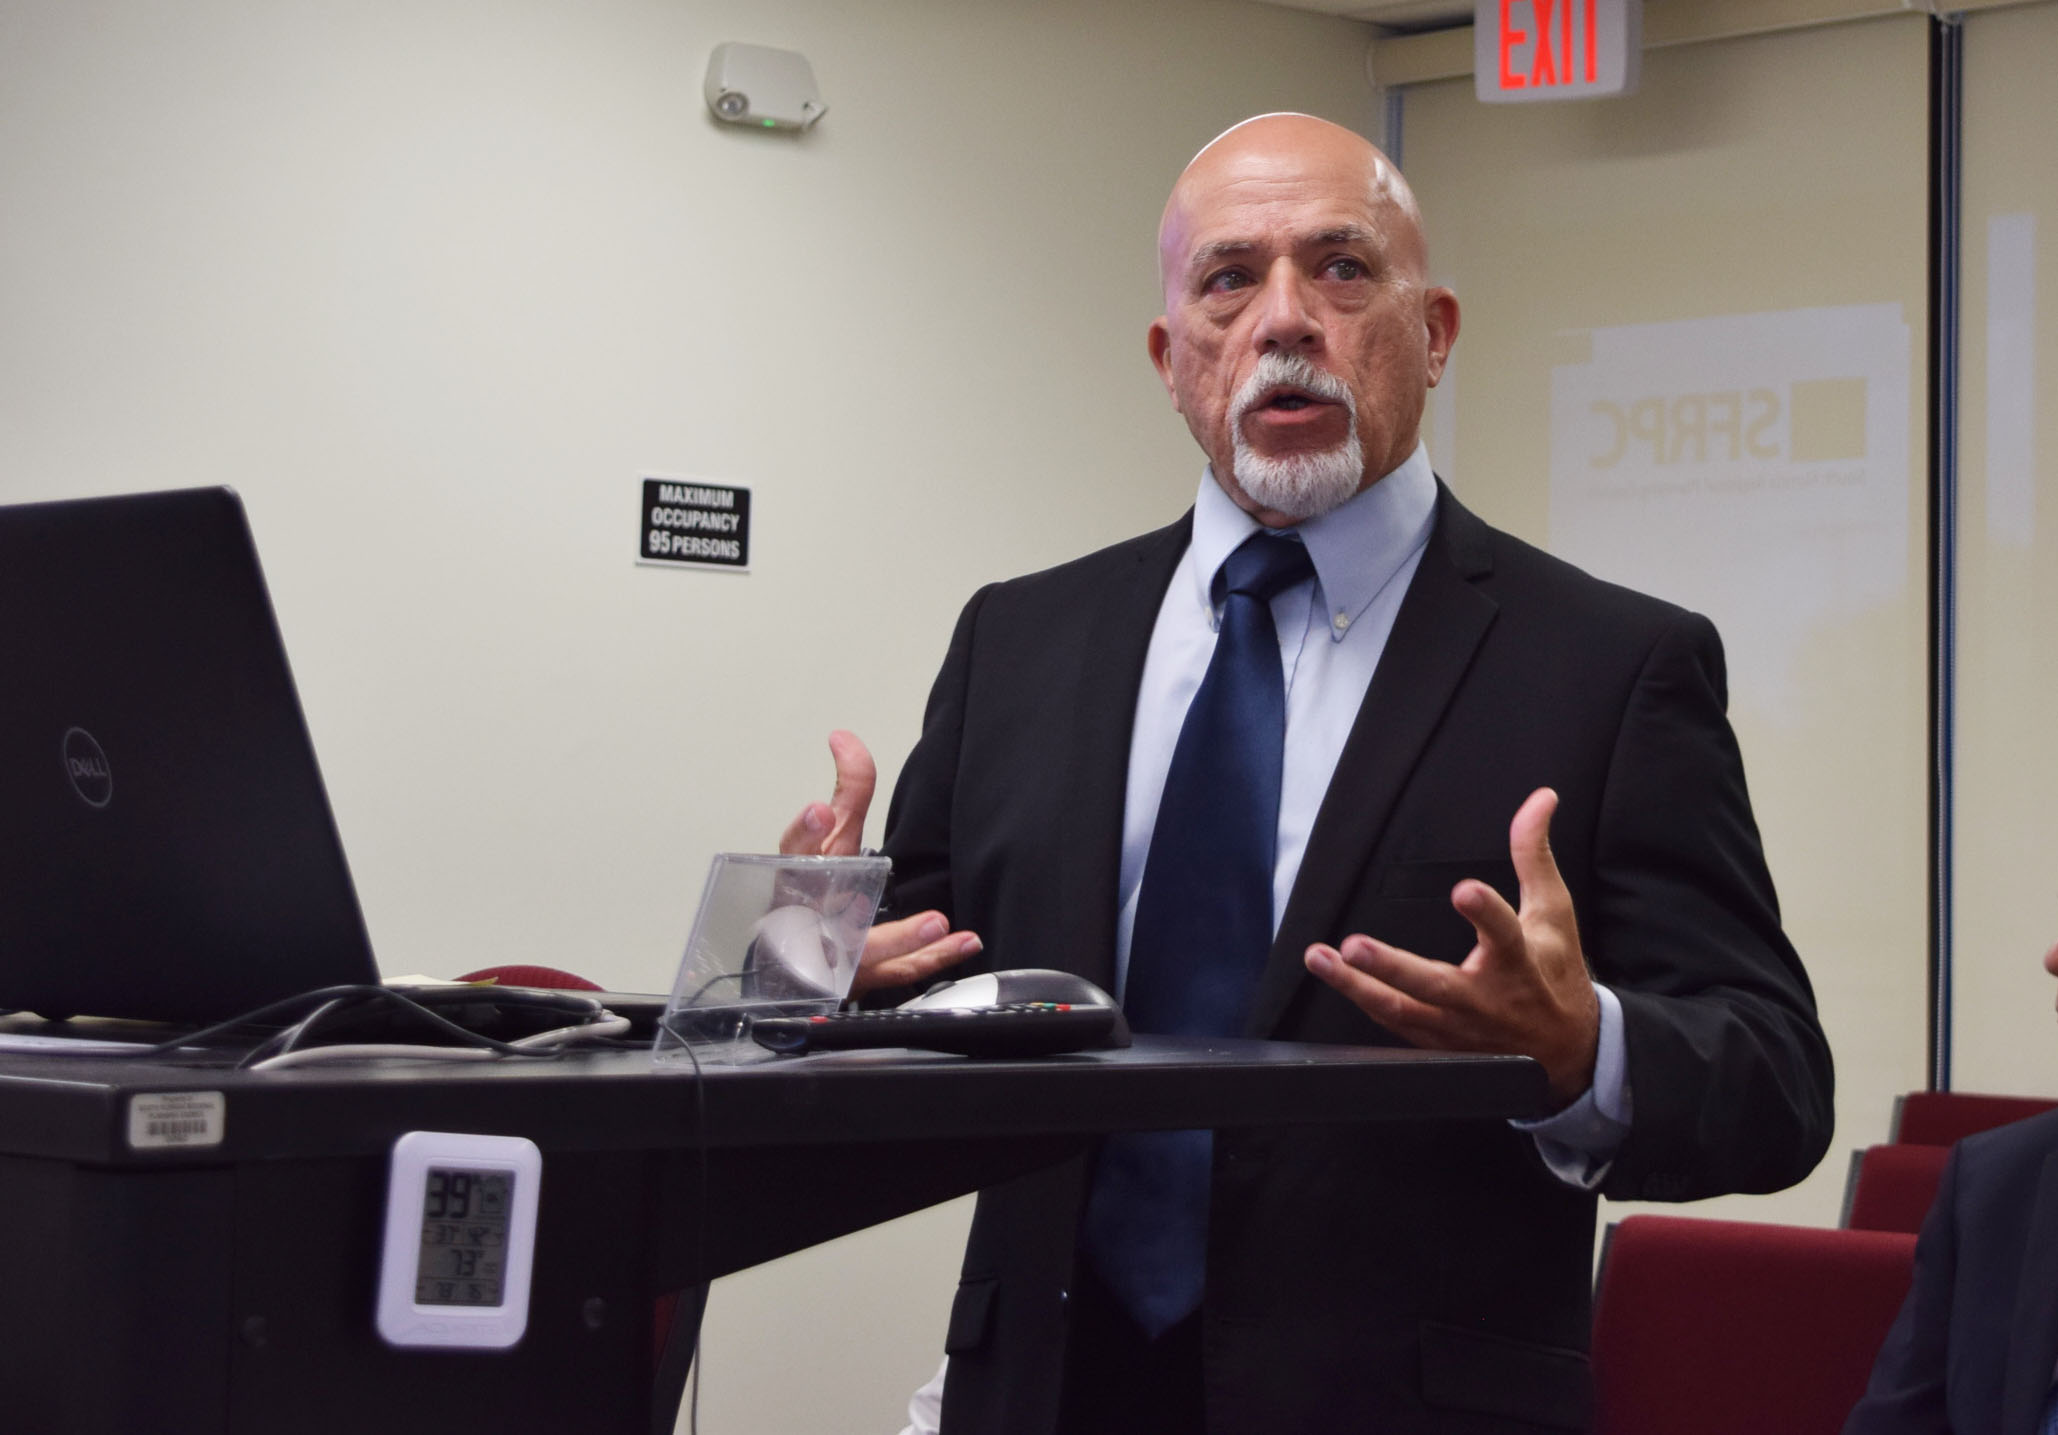 South Florida Regional Planning Council Deputy Director Manny Cela in a blue suit presenting an update with a laptop